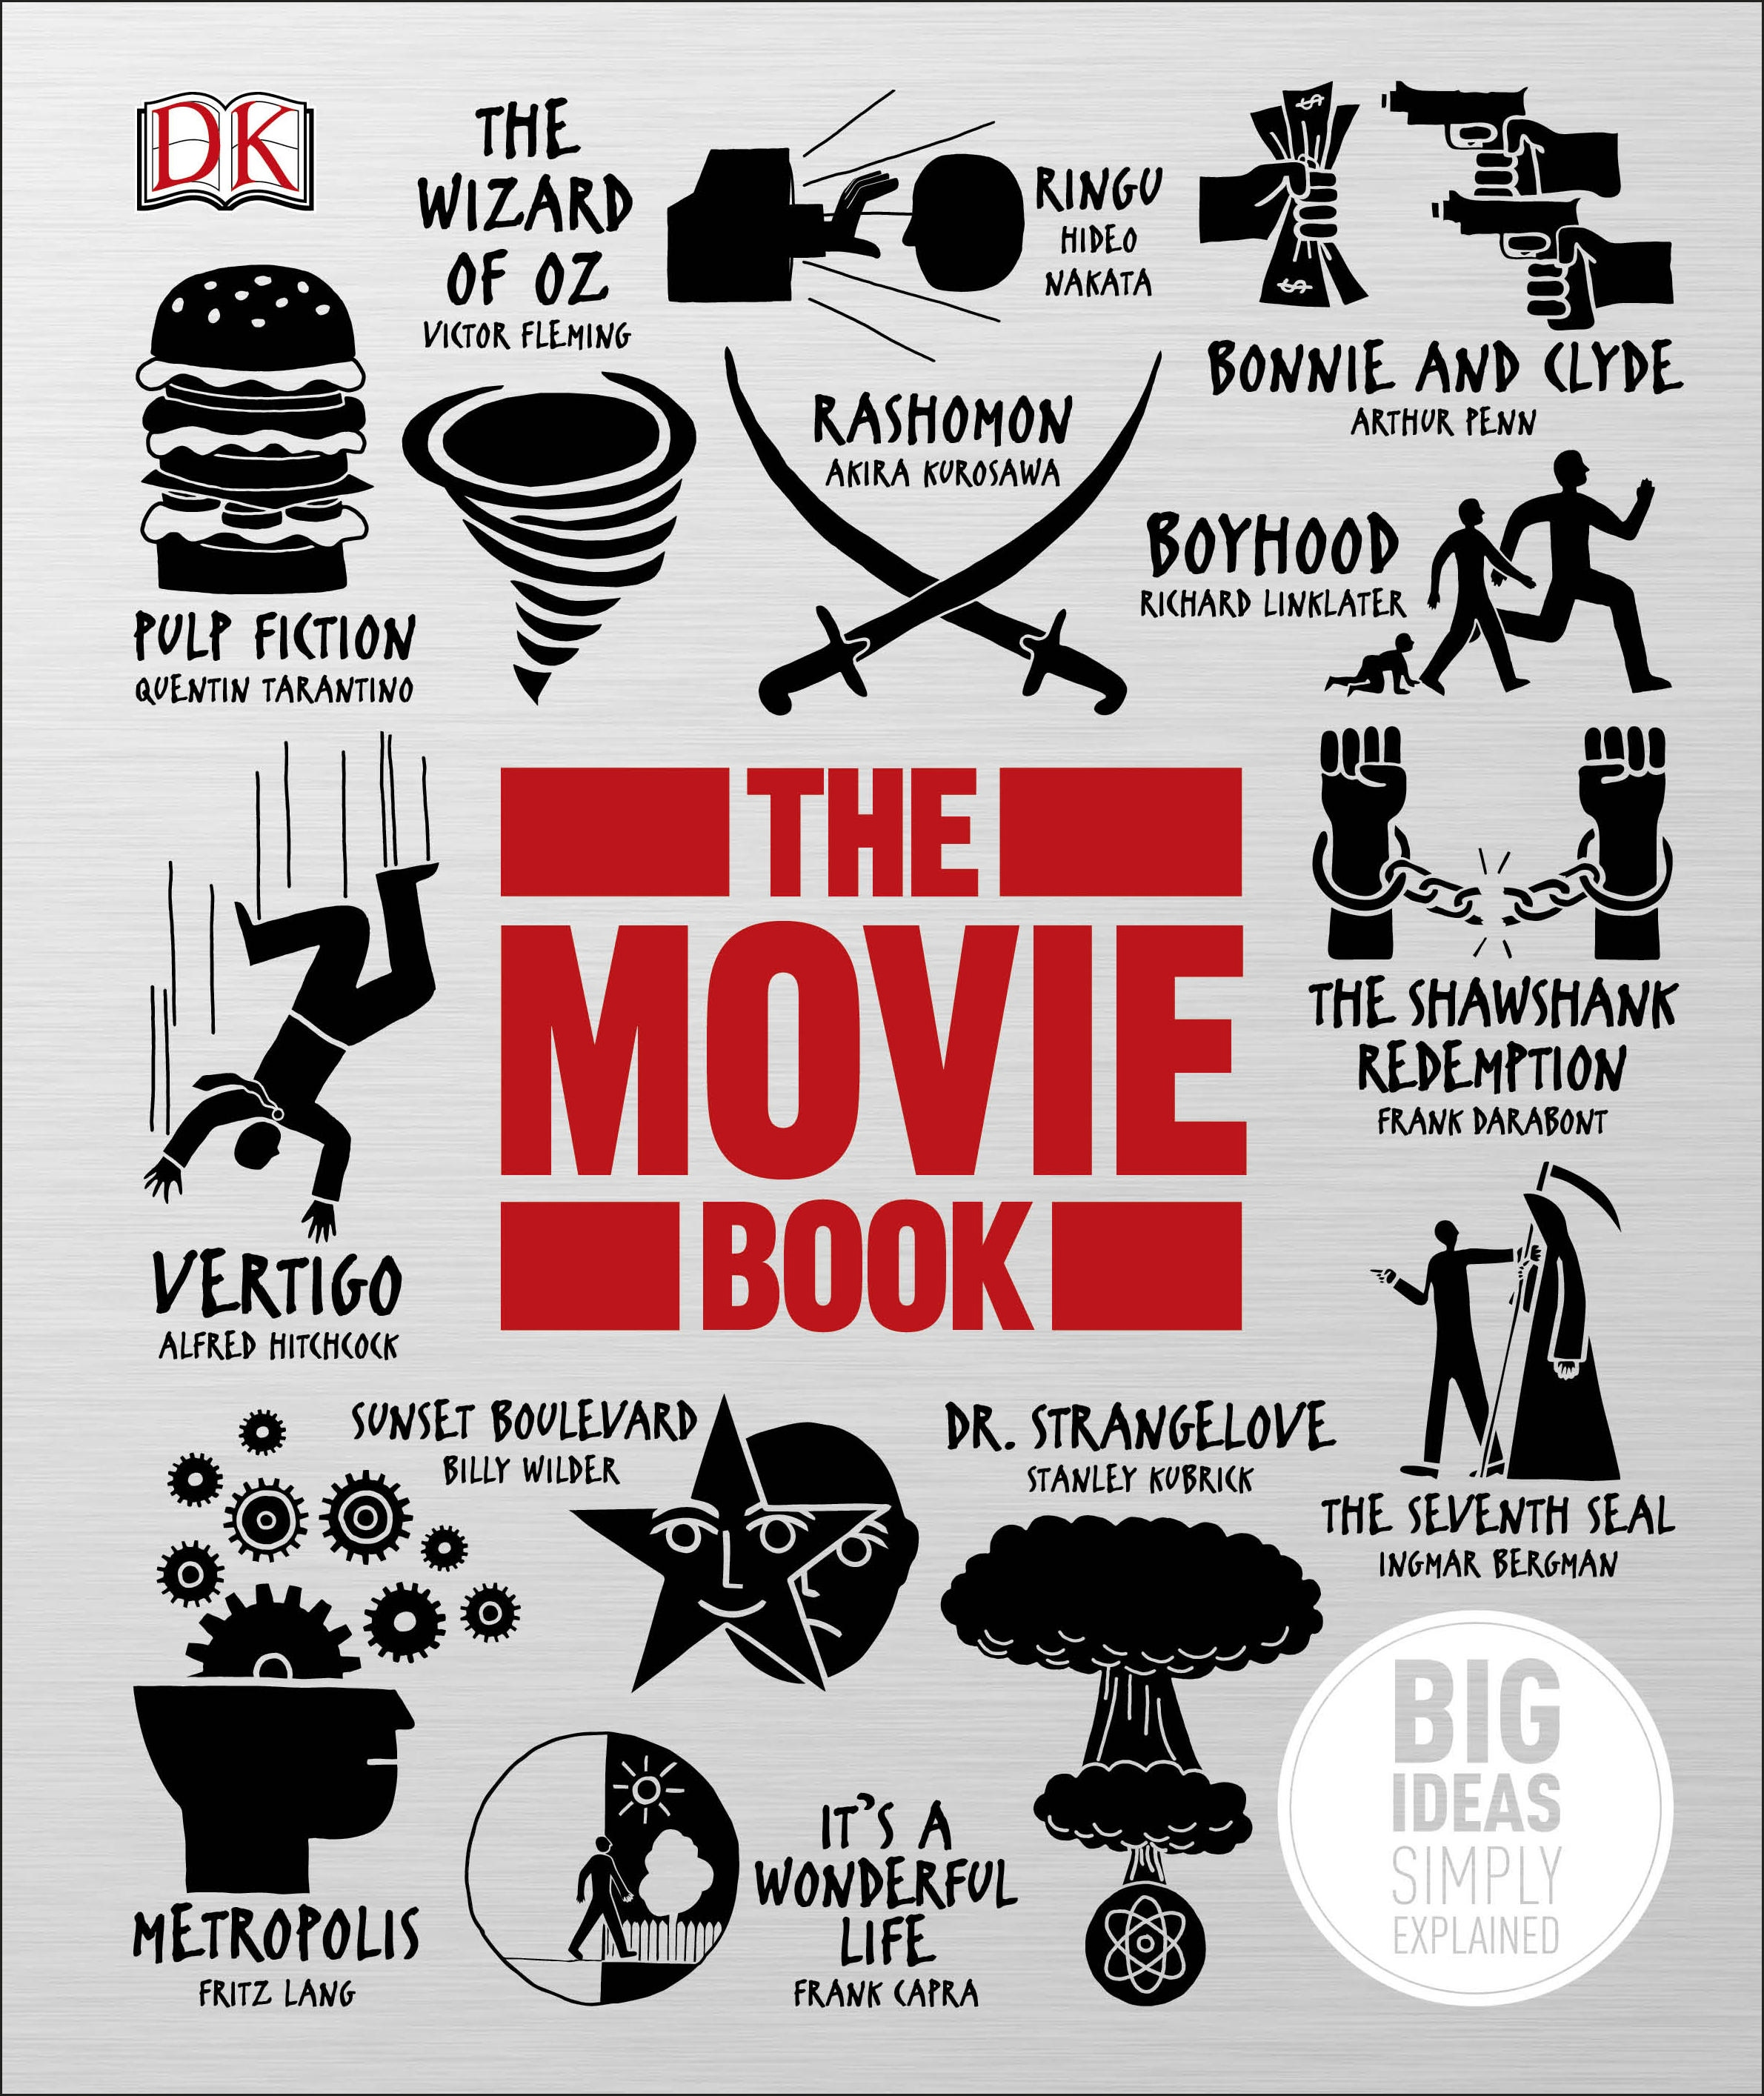 The Movie Book by Dorling Kindersley, ISBN: 9780241188026